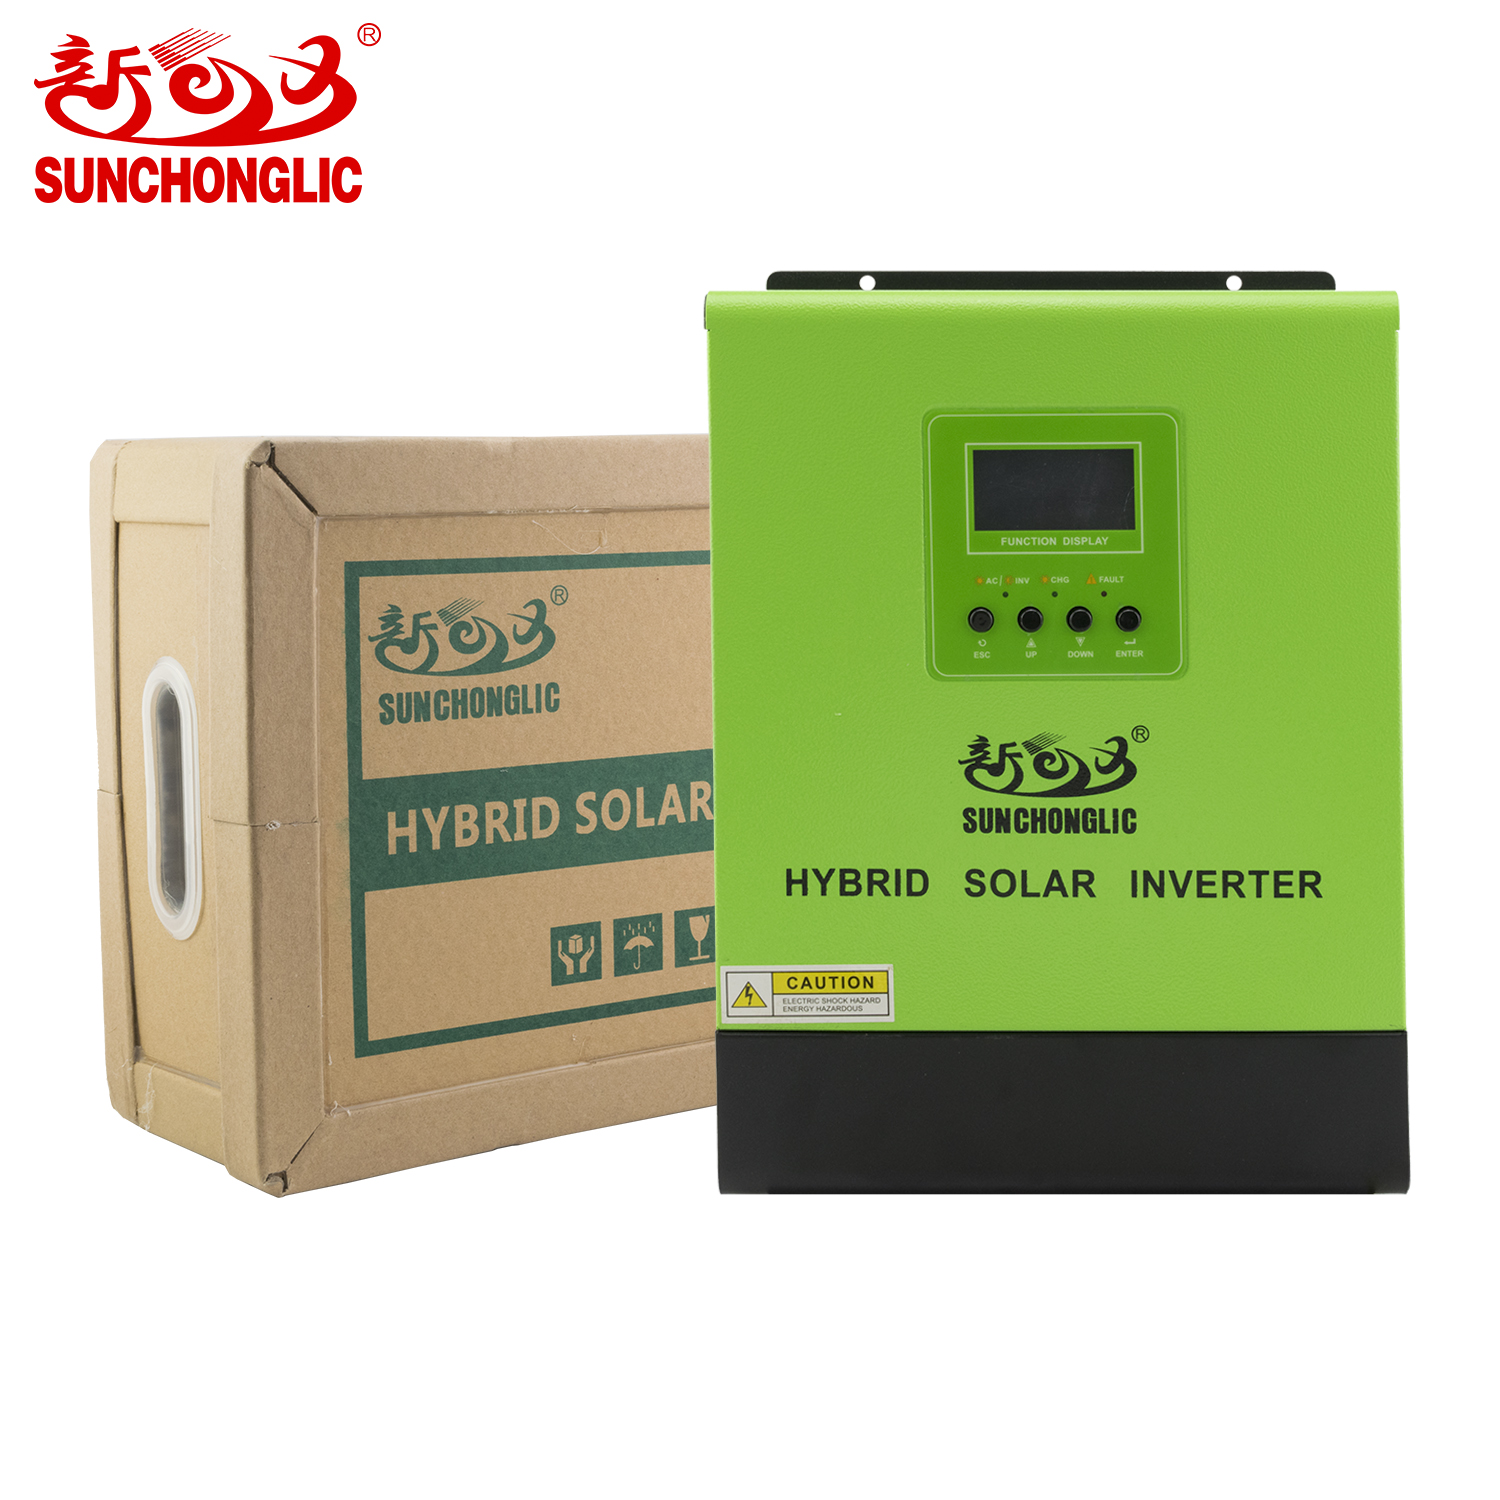 Sunchonglic 12V 1000w pure sine wave PWM hybrid solar inverter with 20A AC charger